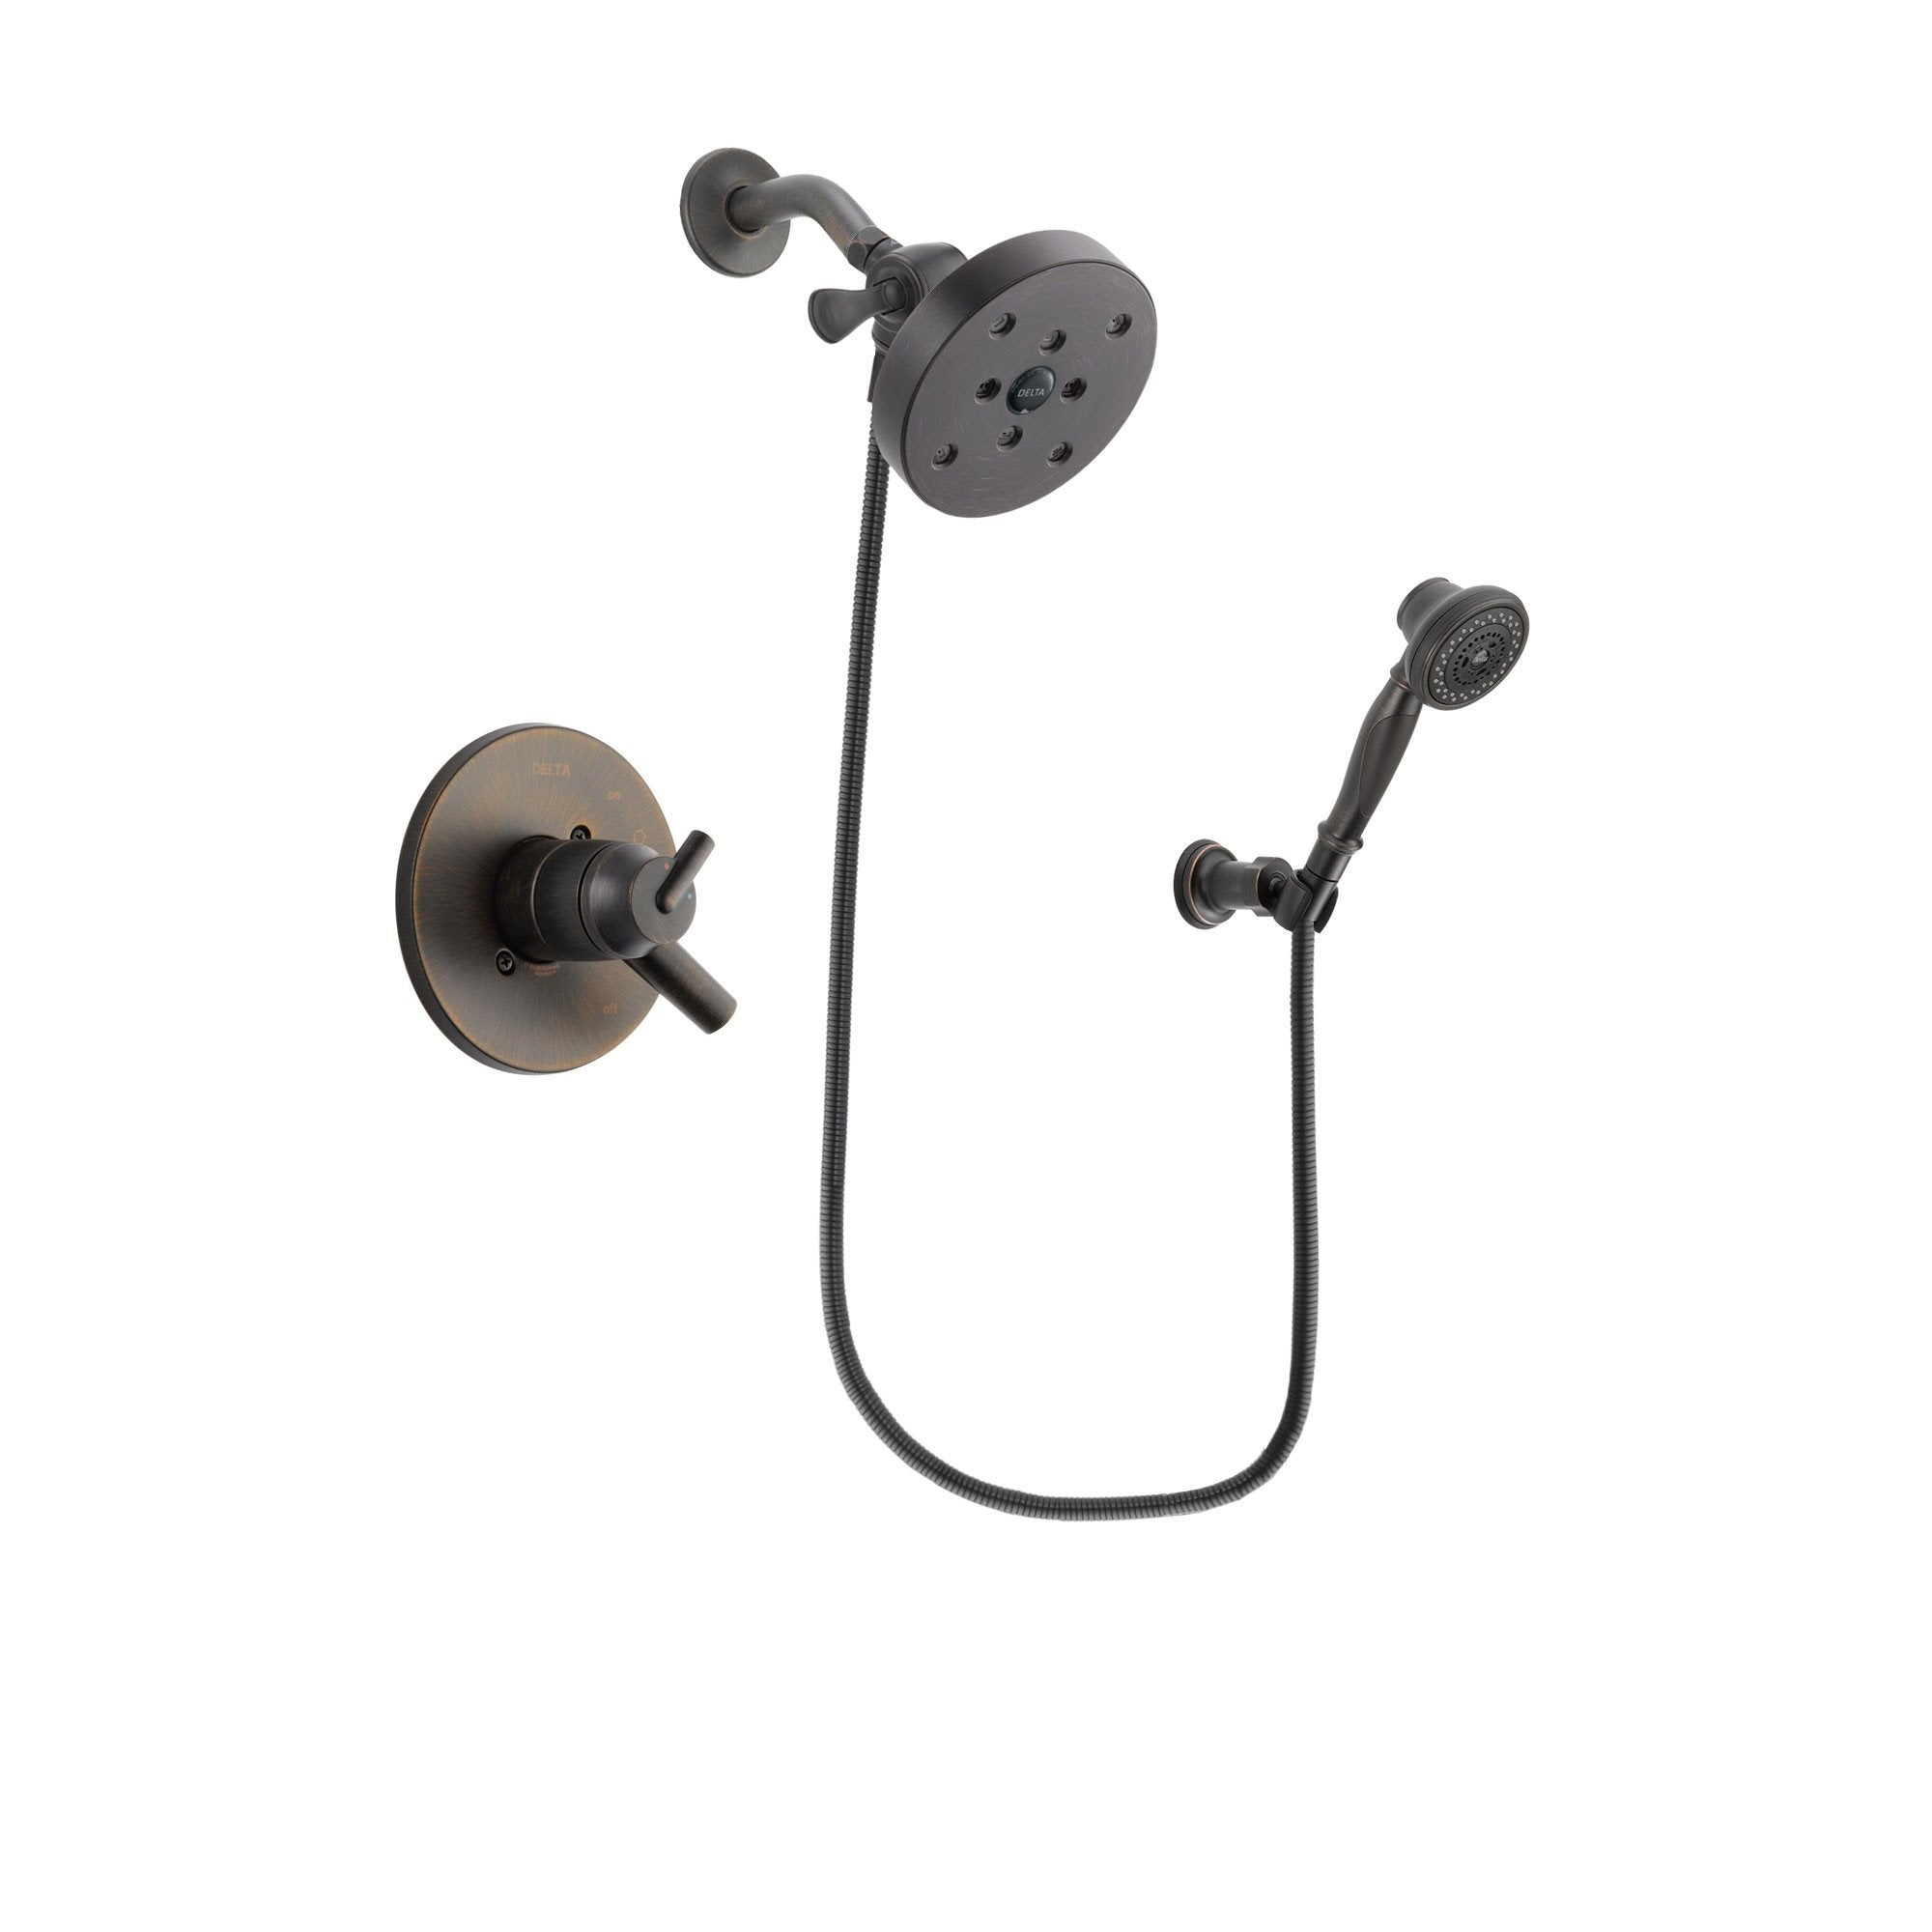 Delta Trinsic Venetian Bronze Shower Faucet System with Hand Shower DSP3092V